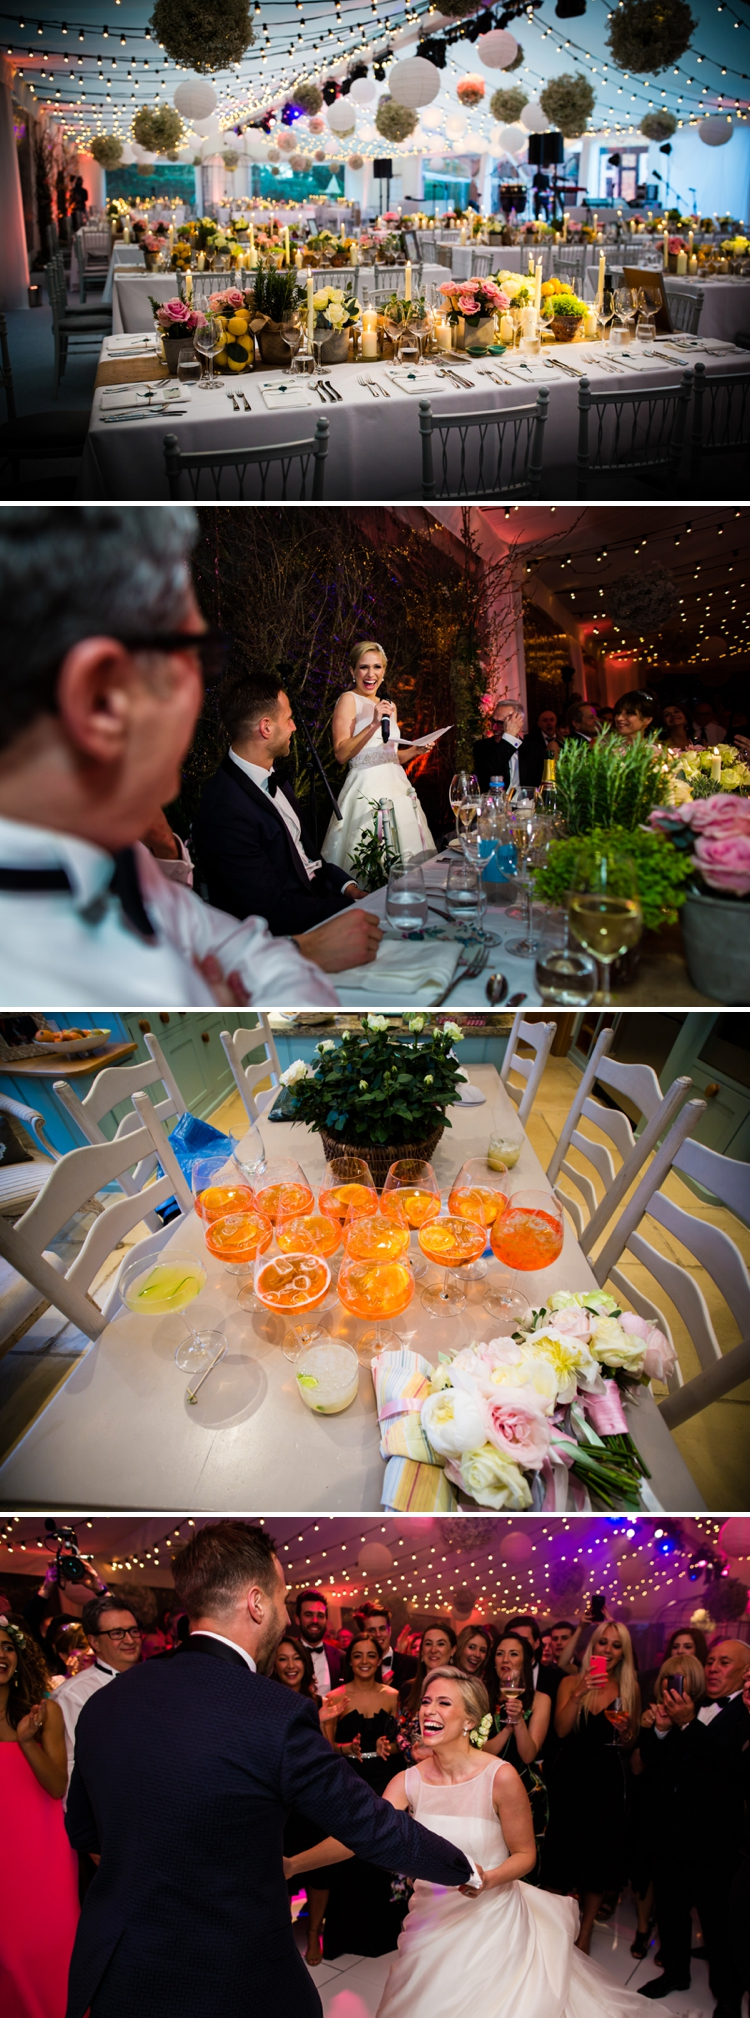 a ritva westenius bride for an italian garden themed wedding at